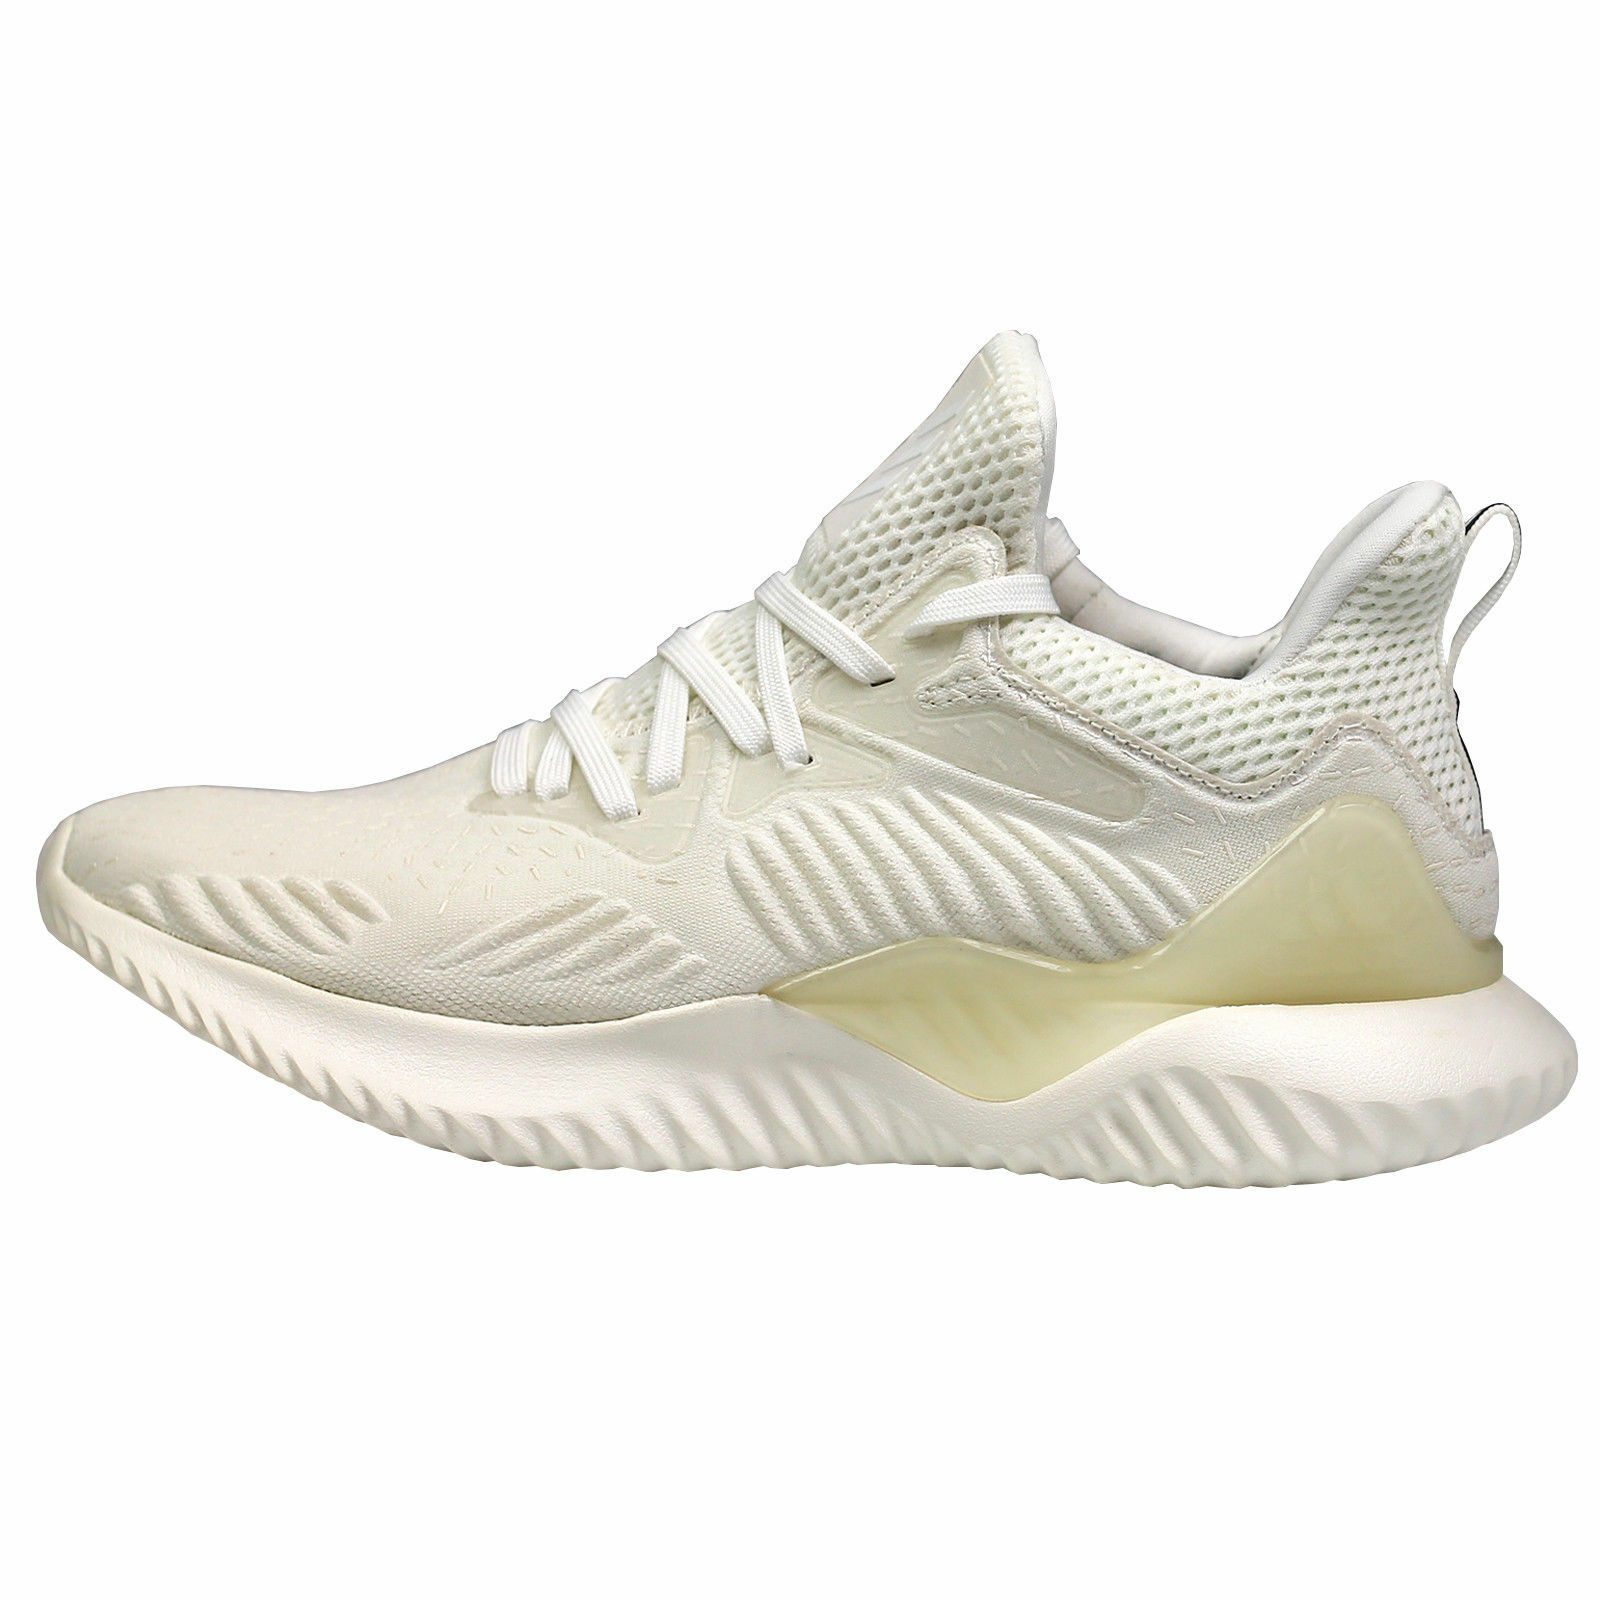 Adidas Alphabounce Beyond Women's Sneakers DB1119 NEW Size 10